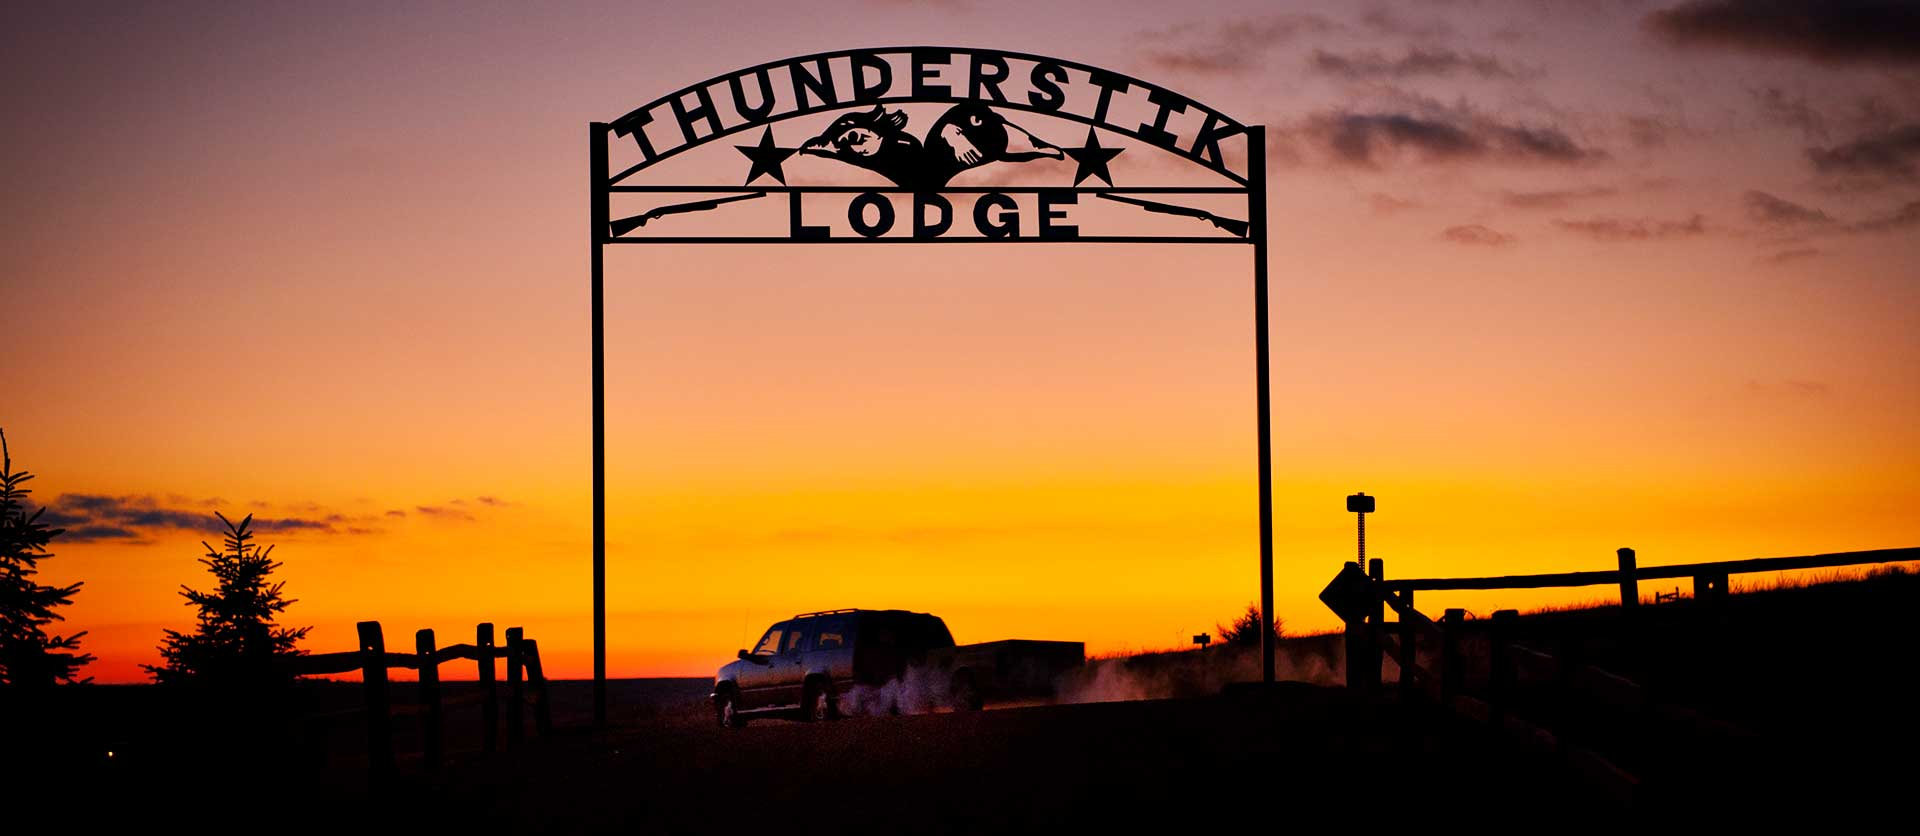 About Thunderstik Lodge